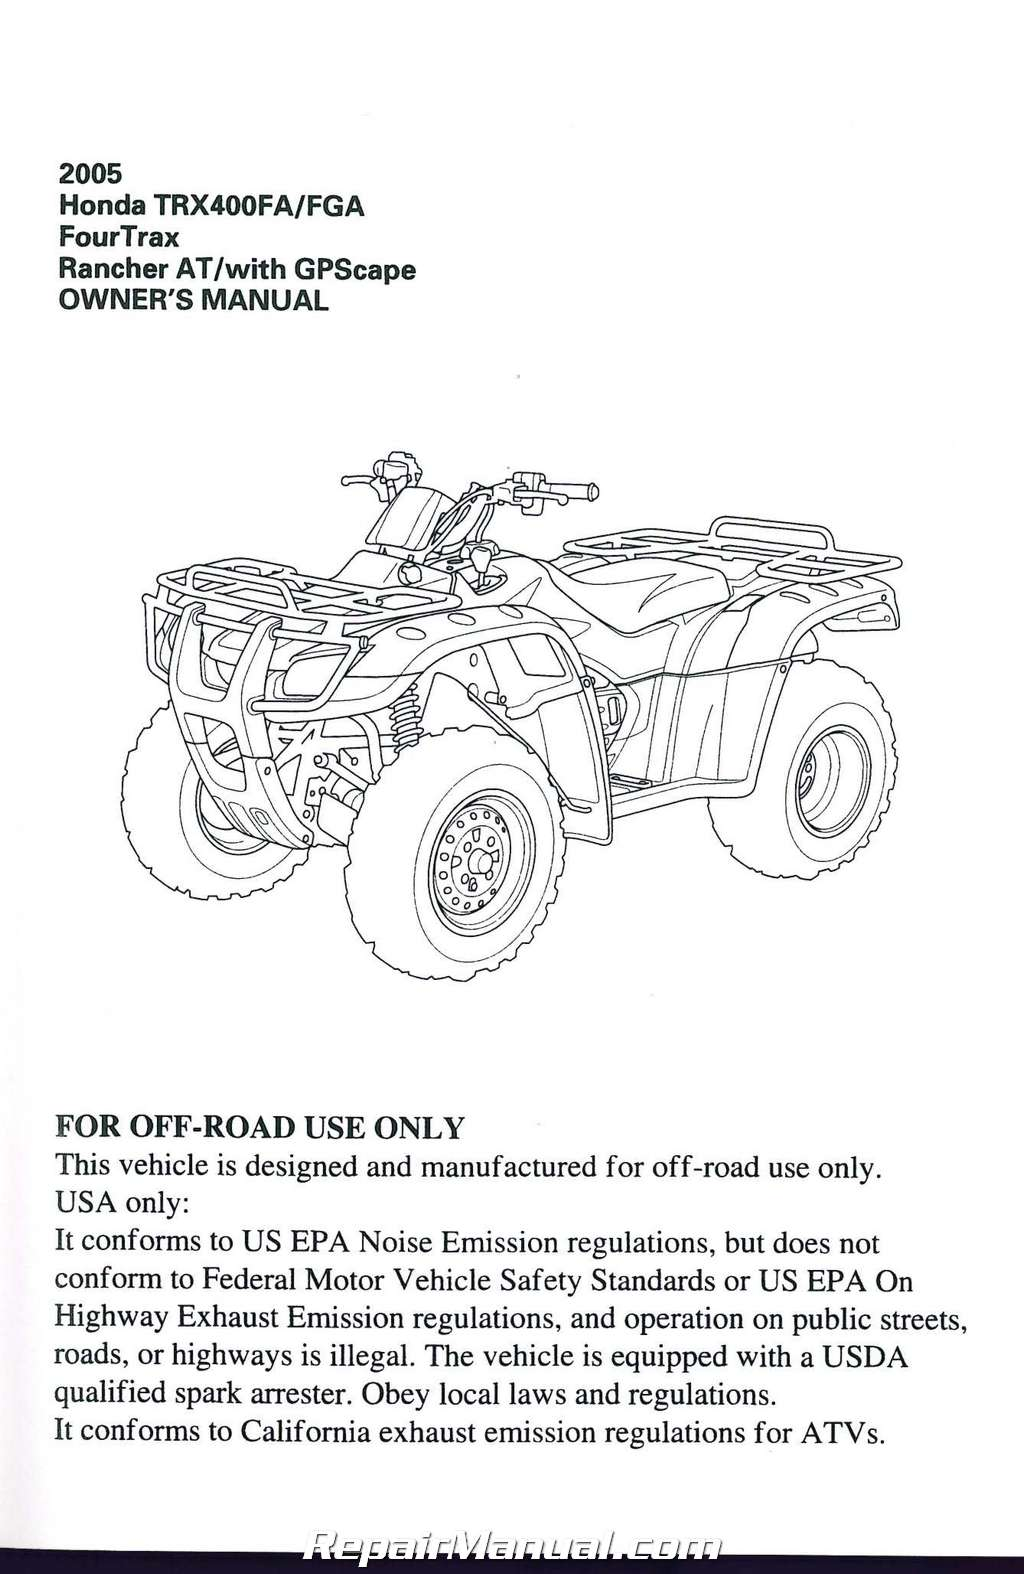 2005 Honda TRX400FA FGA FourTrax Rancher AT with GPScape ATV Owners Manual